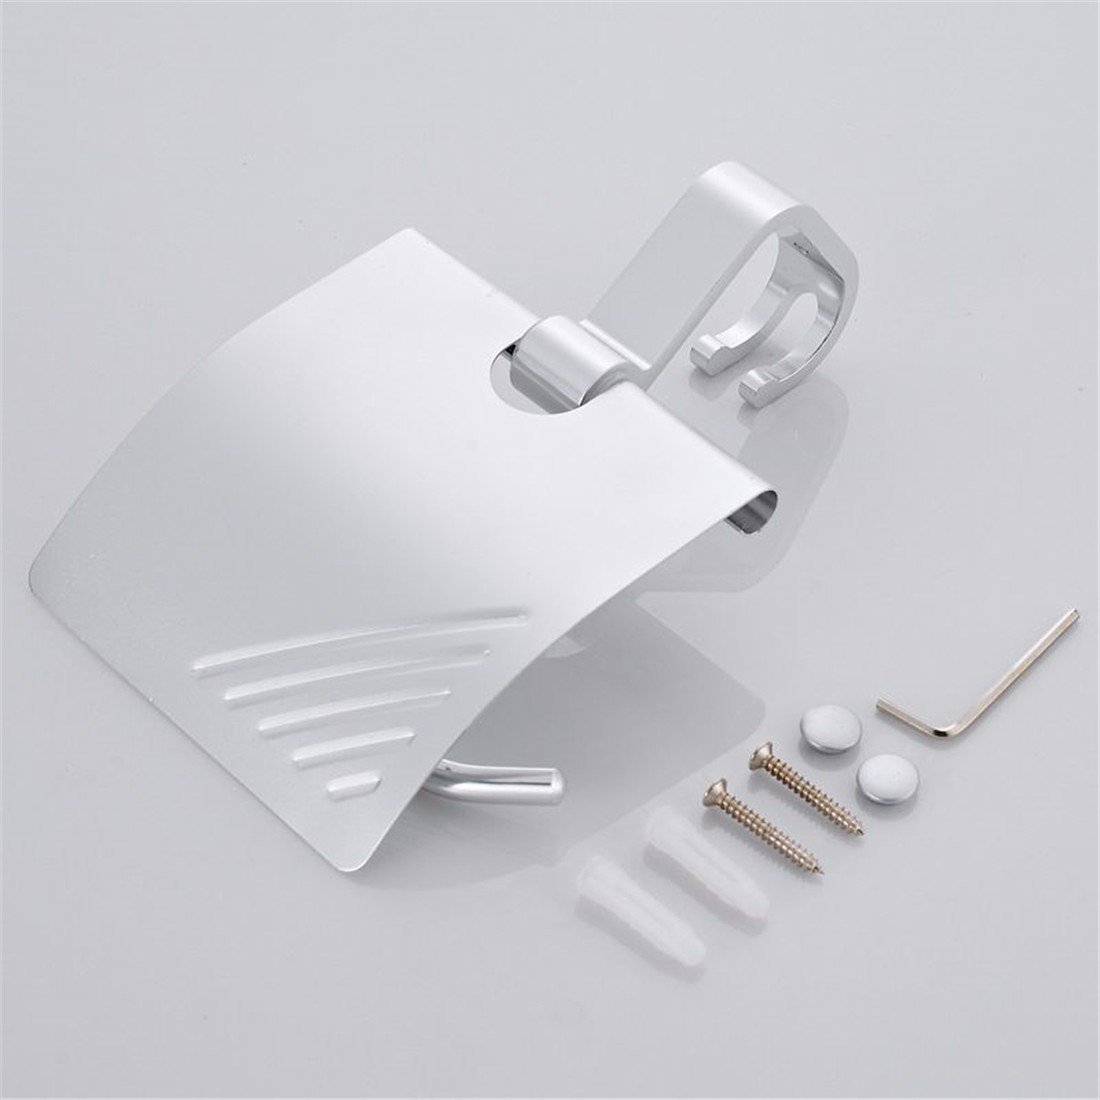 FACAIG The aluminum works light toilet paper holder bathroom accessories set by FACAIG (Image #3)